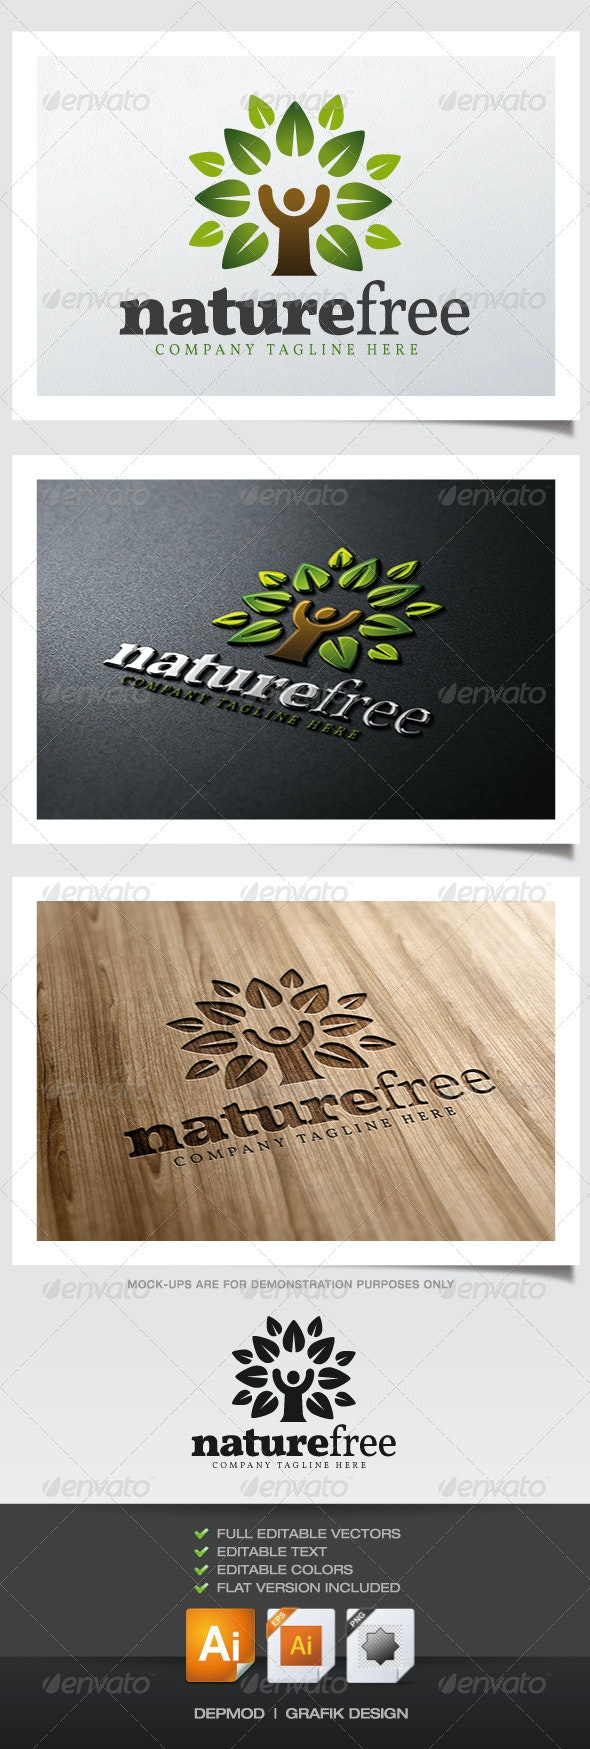 Nature Free Logo - Nature Logo Templates